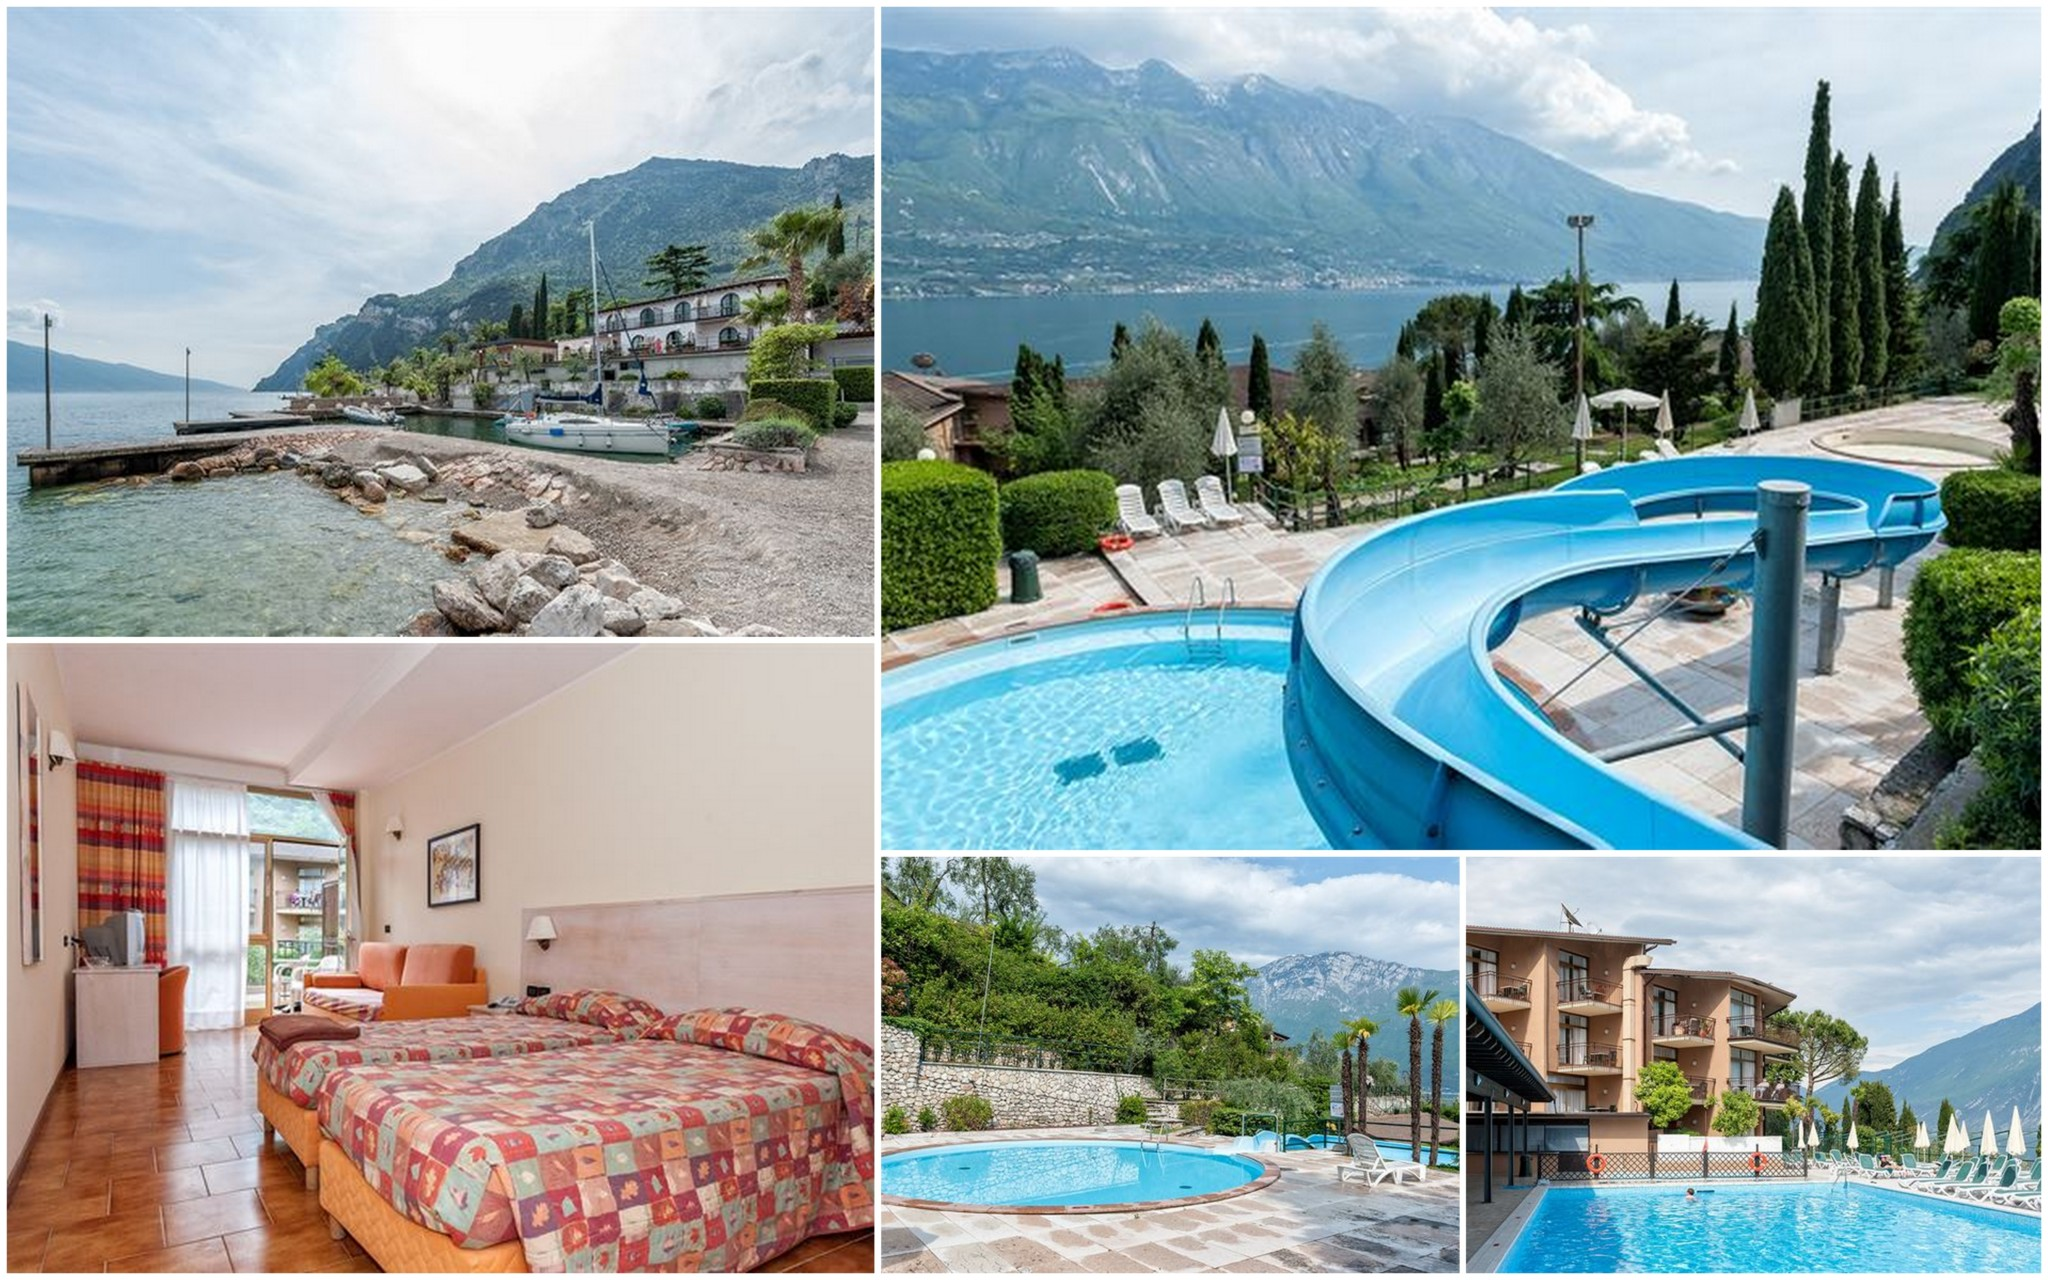 Gardasee-All-Inclusive-Urlaub